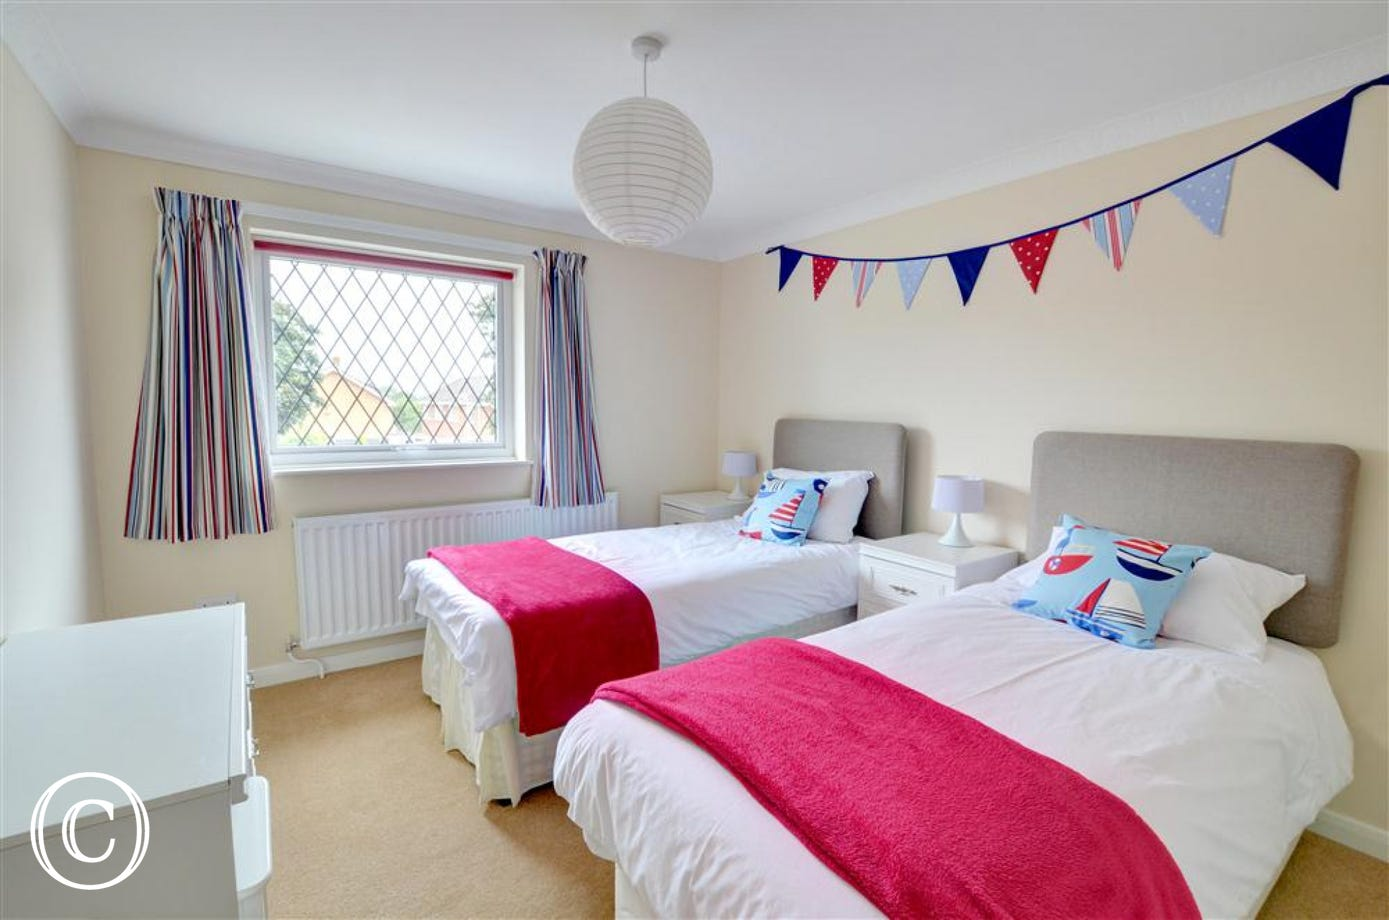 A cheerful twin bedded room with fresh white bed linen and accessories in bright colours and bunting adorning the wall.